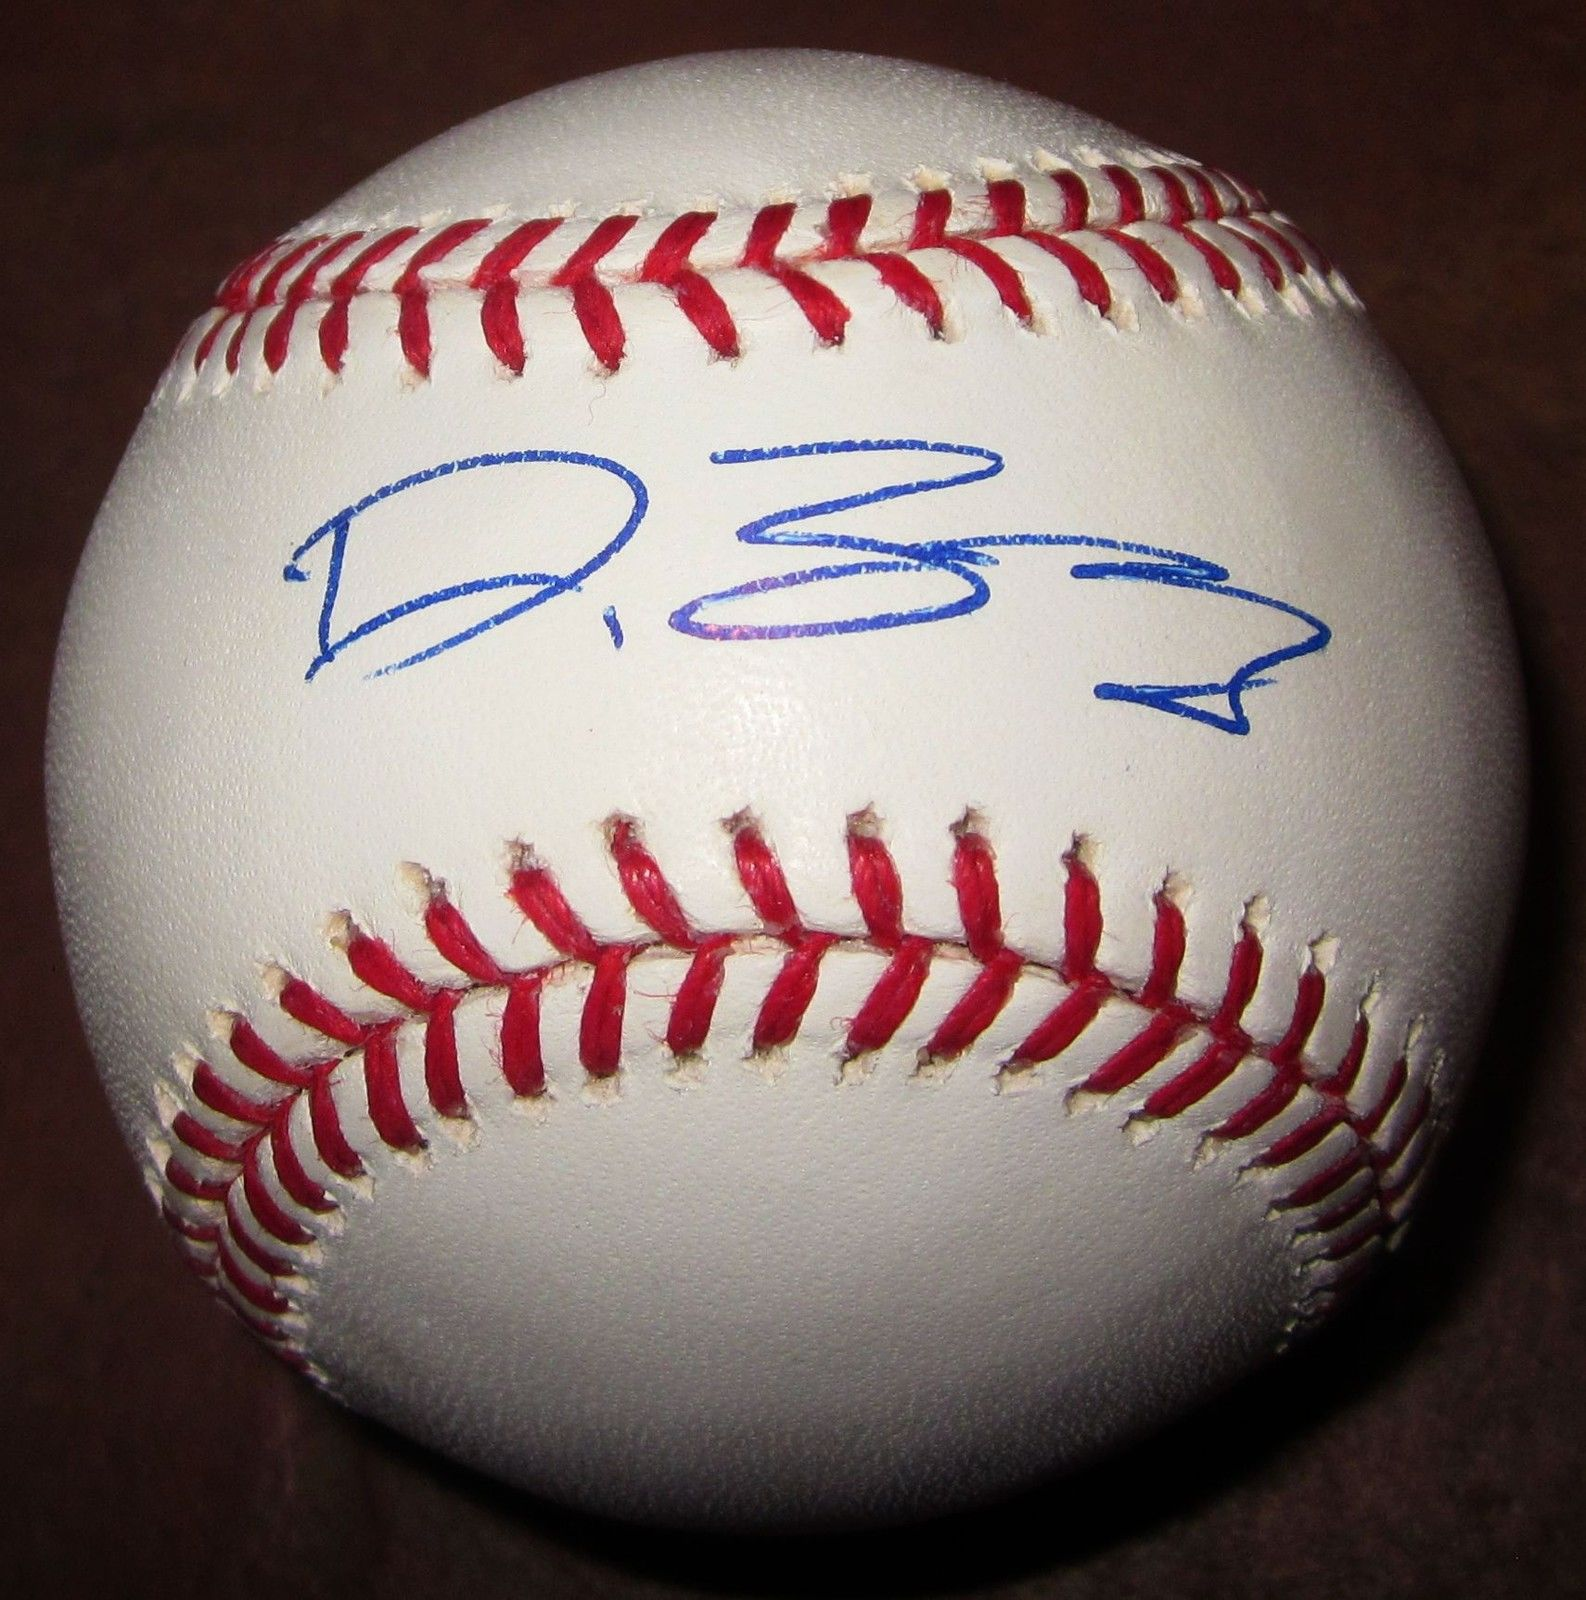 DYLAN BUNDY SIGNED BASEBALL (OMLB)